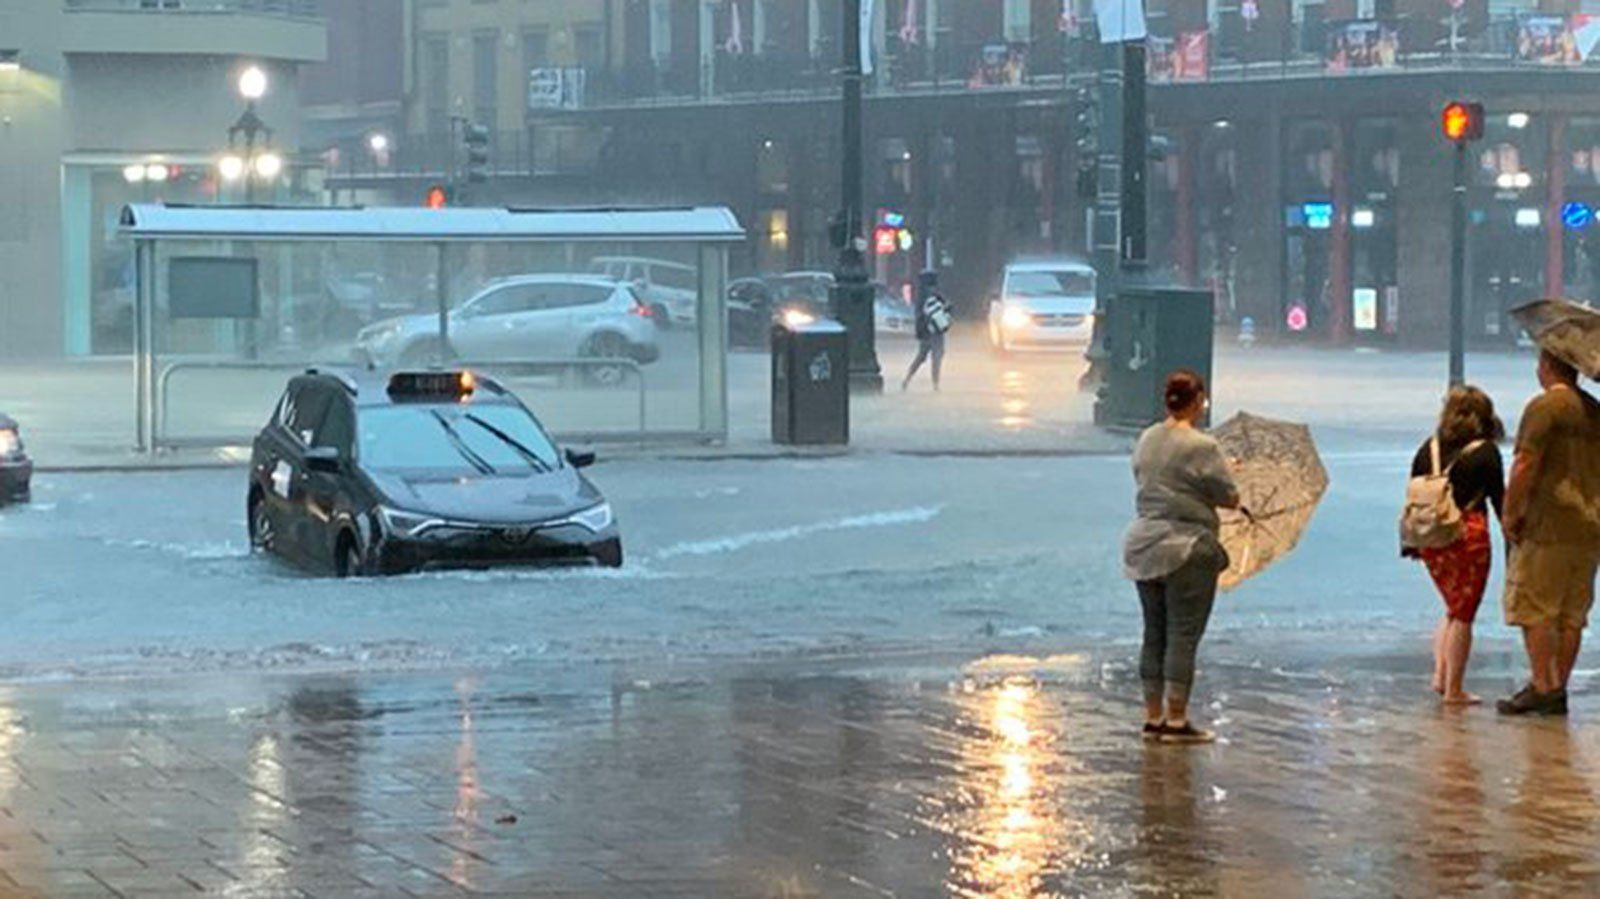 https://www wvtm13 com/article/locally-heavy-rain-may-cause